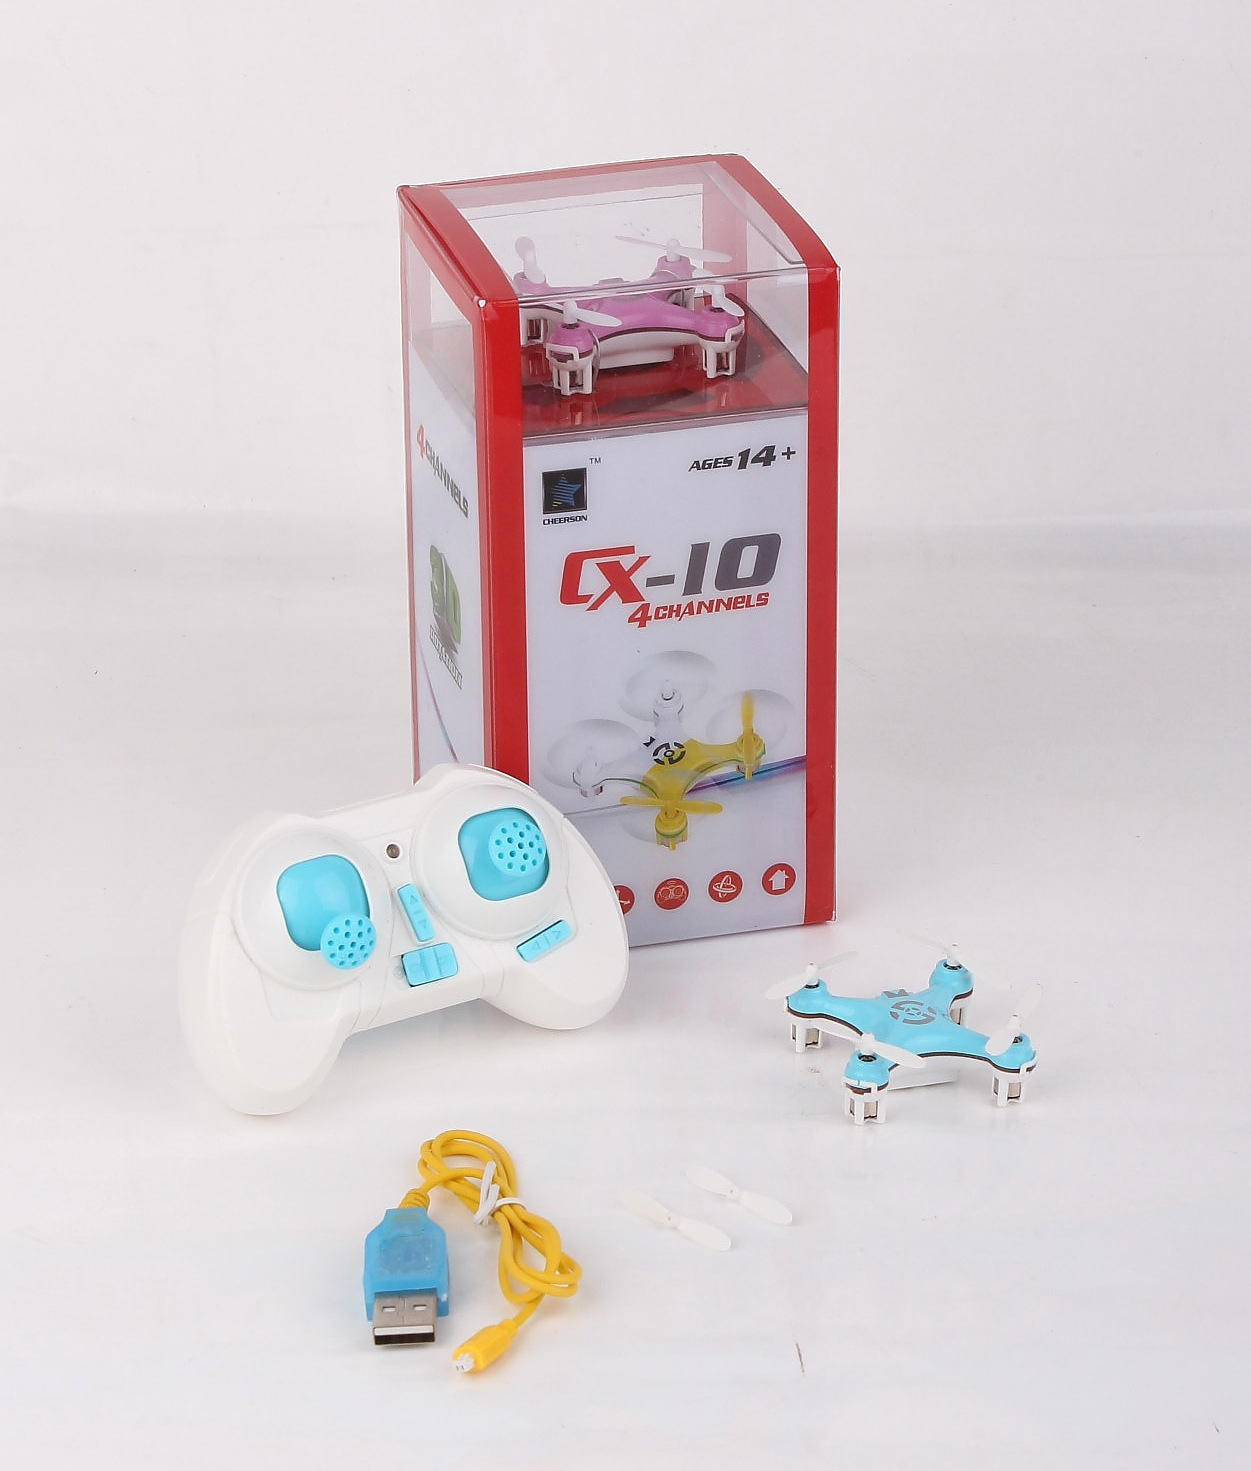 CX-10 Mini 2.4G Quadcopter Remote Control Flight Toy Helicopter Aviation Model CX-10